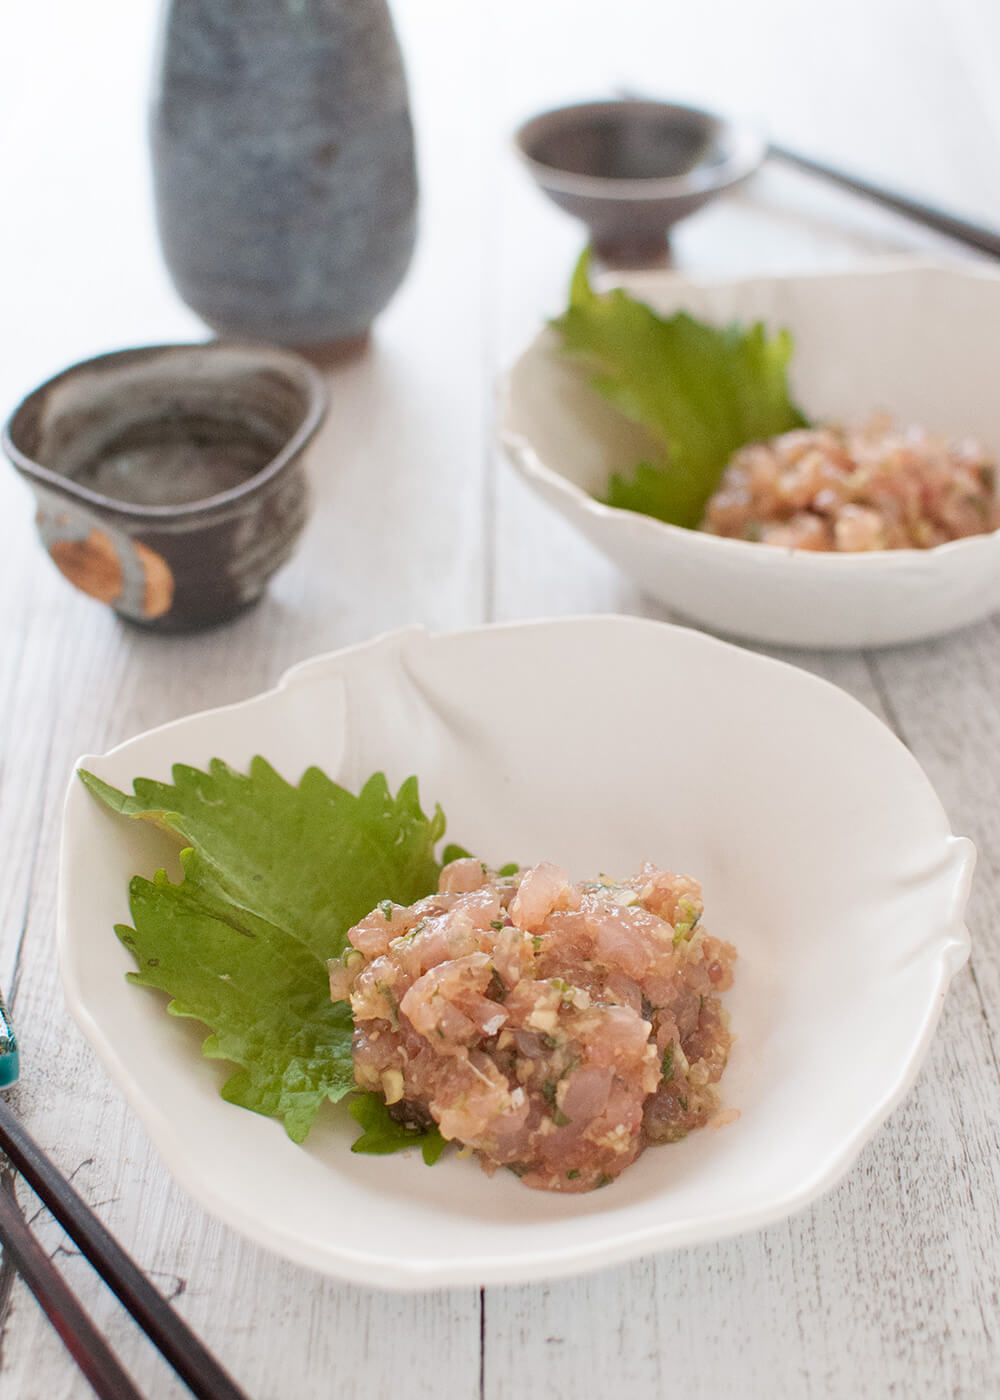 Japanese-style kingfish tartare, called Kingfish Tataki, is a similar dish to fish tartare but with miso flavour. The fish is chopped much more finely than standard fish tartare. Everything is done on a cutting board with a knife, including mixing the ingredients.